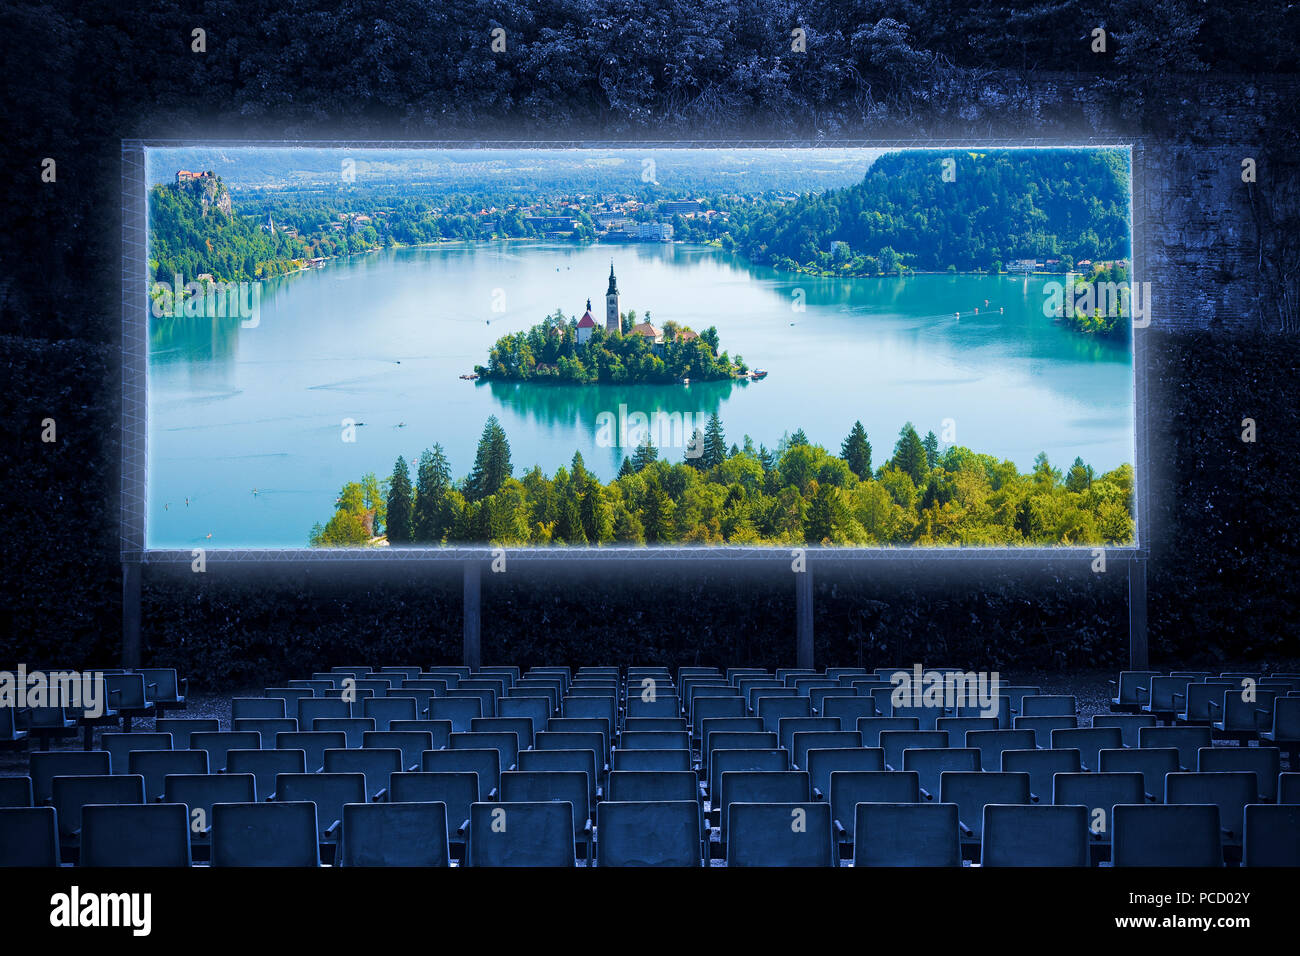 Bled lake, the most famous lake in Slovenia with the island of the church (Europe - Slovenia) - panoramic view - Outdoor cinema concept image - Stock Image